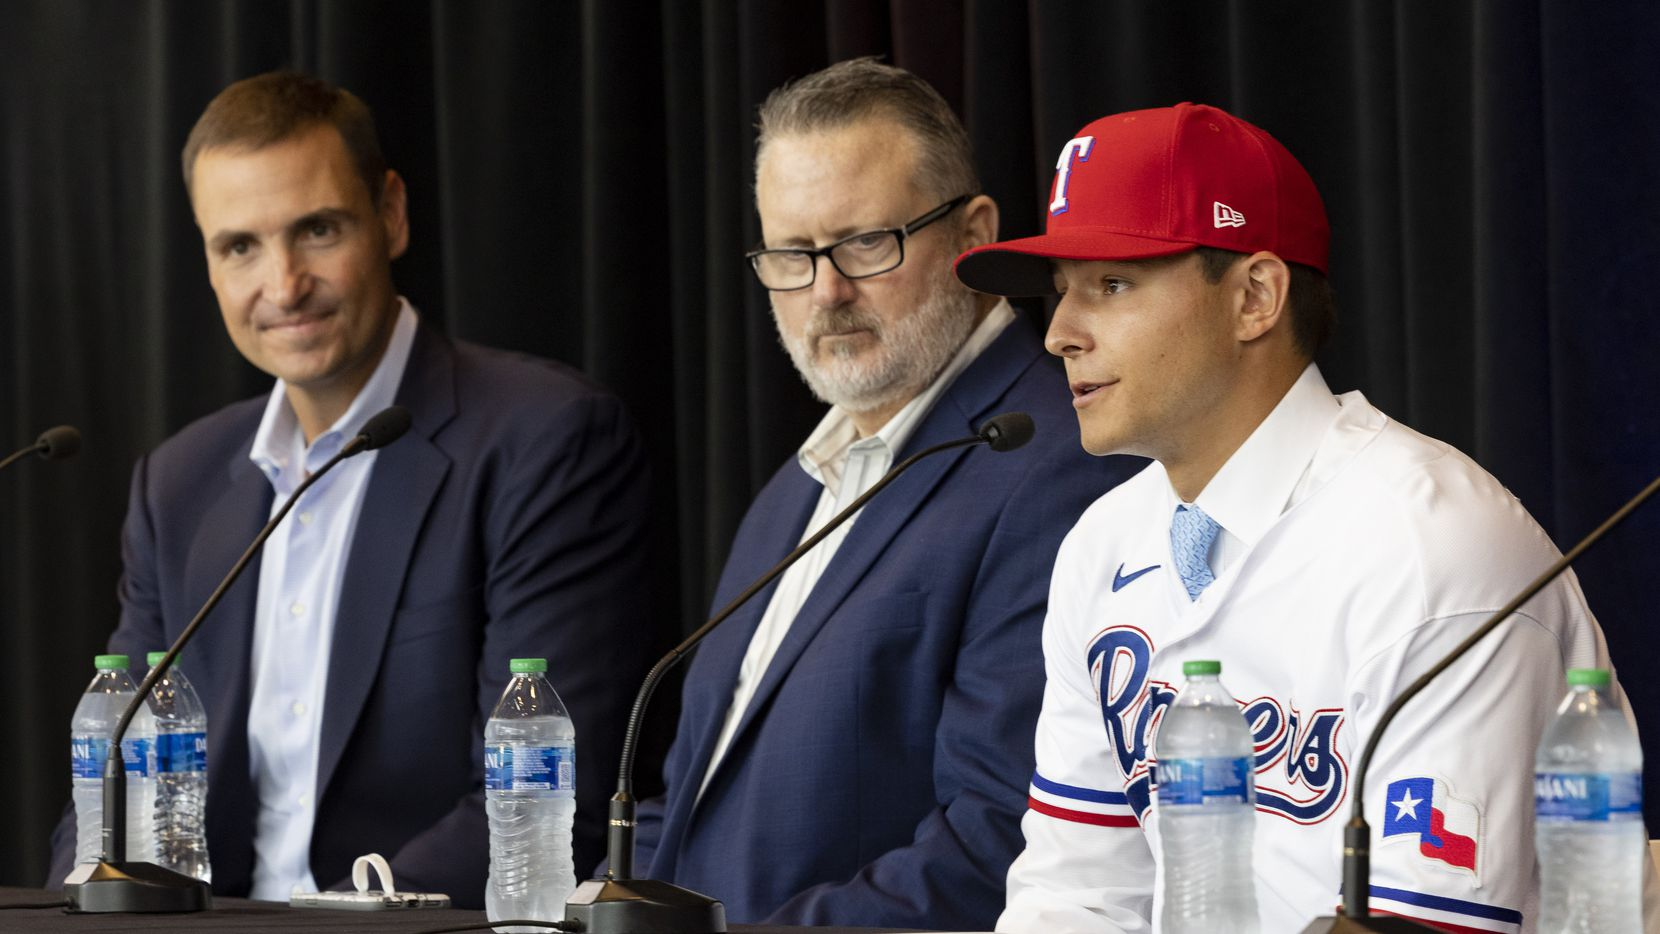 (From left) Chris Young, Texas Rangers Executive Vice President and General Manager, Kip Fagg, Rangers Senior Director of Amateur Scouting, listen to Jack Leiter from Vanderbilt University speak during a press conference announcing his signing on Tuesday, July 27, 2021, at Globe Life Field in Arlington. Leiter was the club's 2021 MLB Draft first round selection and the draft's second overall pick. (Juan Figueroa/The Dallas Morning News)